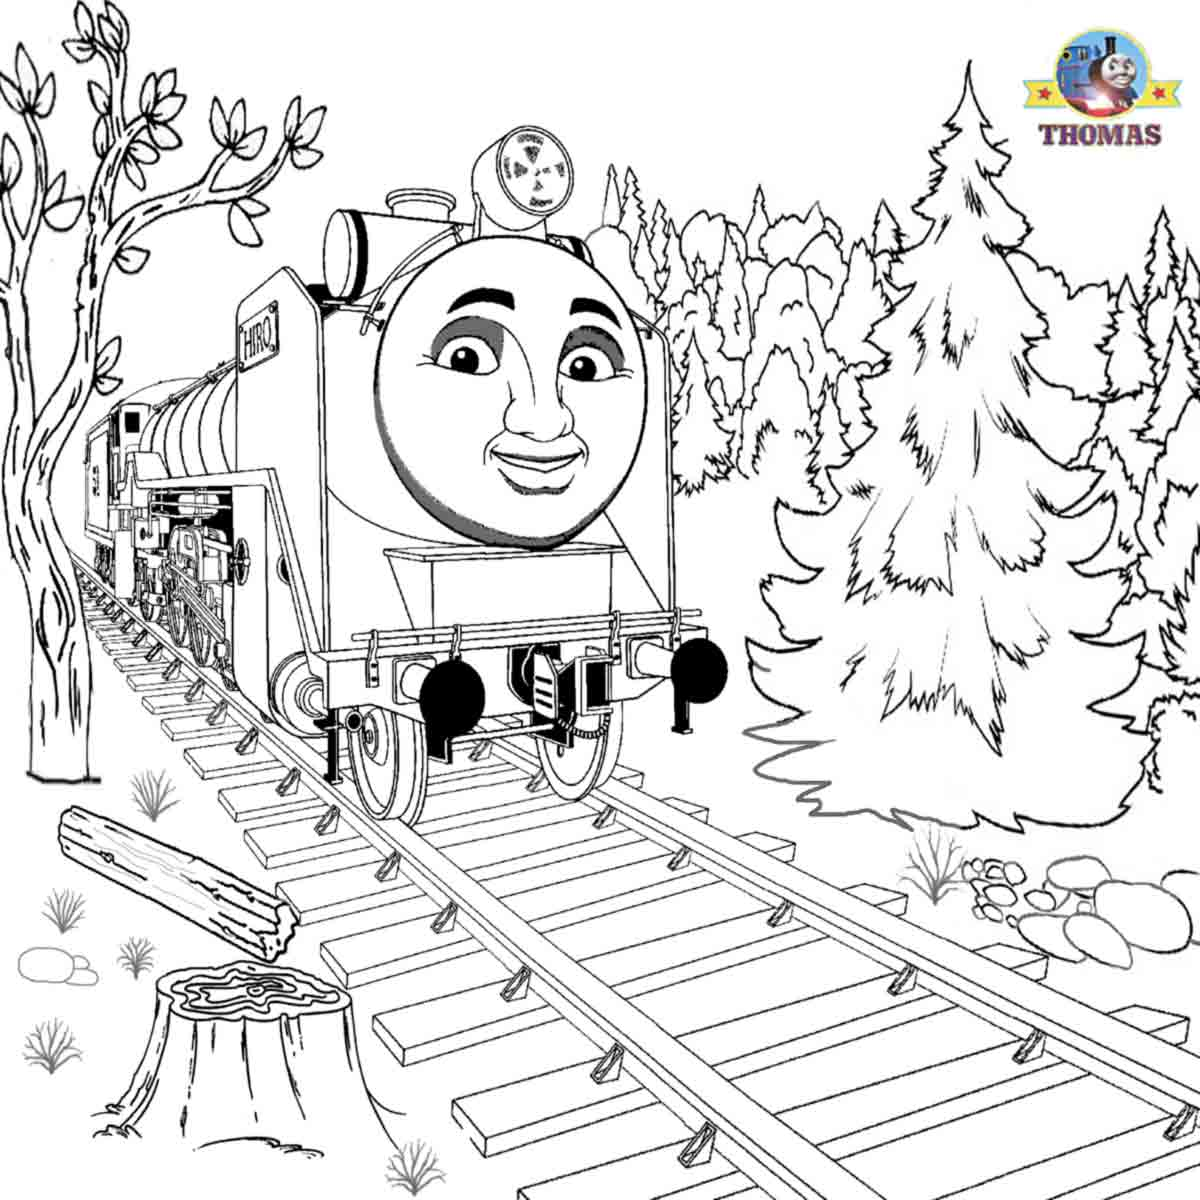 thomas and friends coloring sheets kleurplaat de trein spencer 28 afbeeldingen thomas friends coloring and sheets